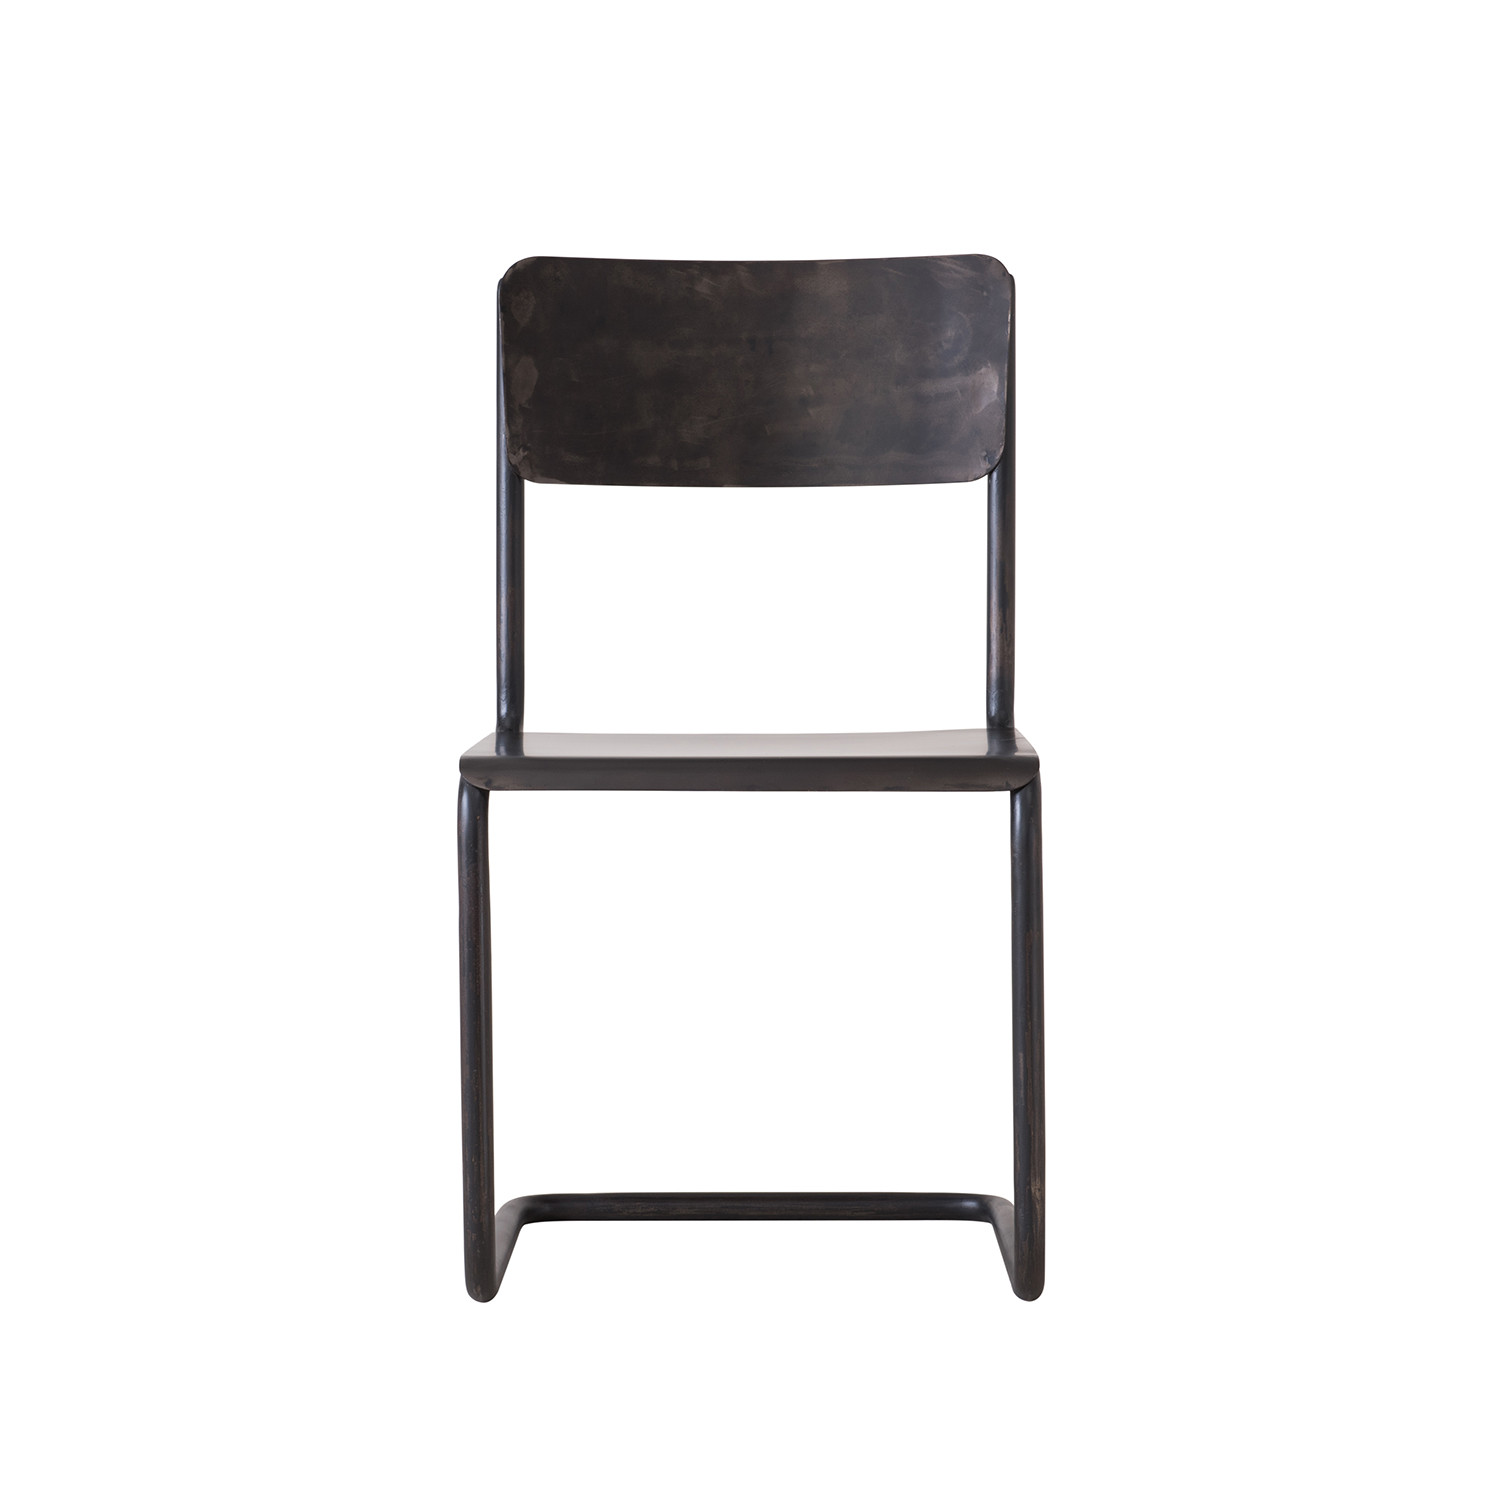 Pleasing Lowell Dining Chair Sixpenny Touch Of Modern Uwap Interior Chair Design Uwaporg